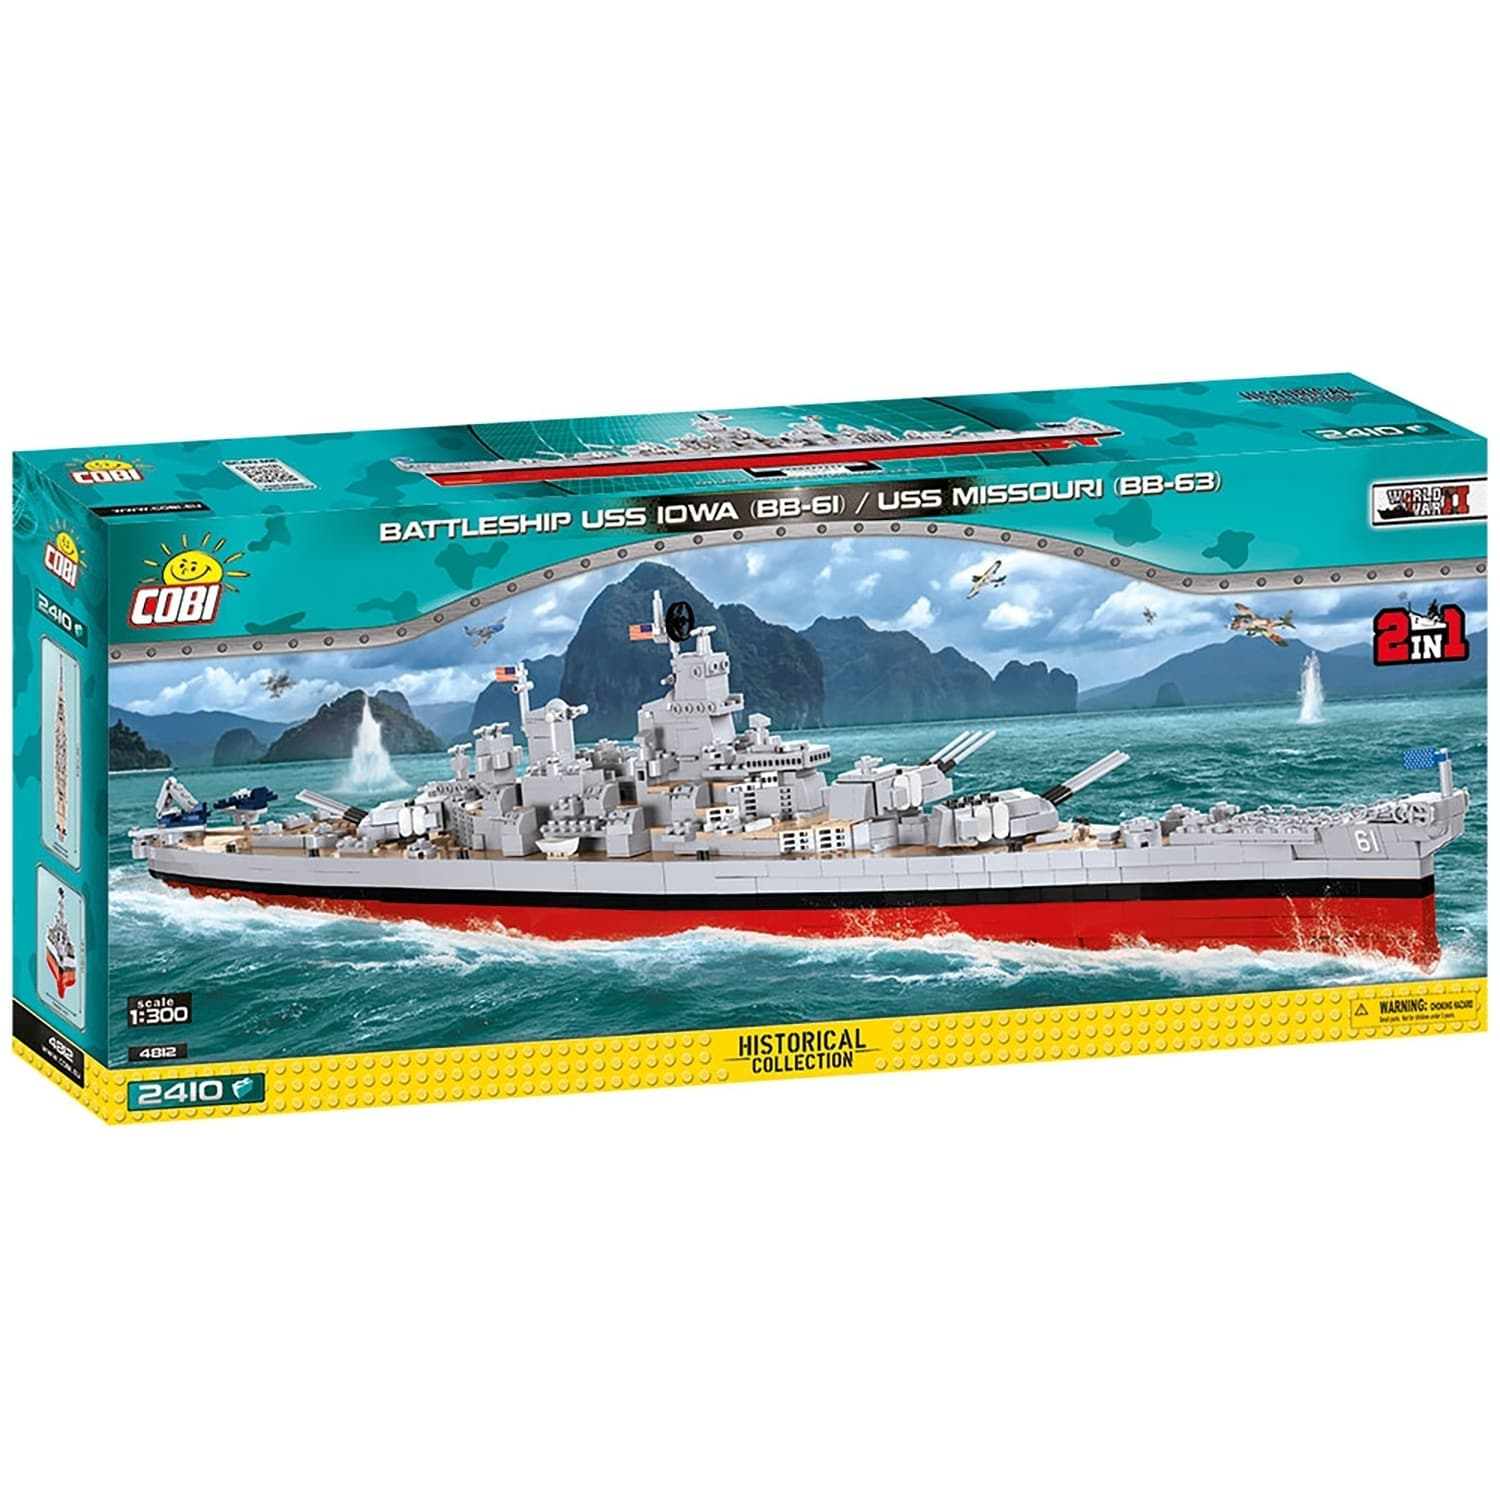 Shop Cobi World War Ii Battleship Uss Iowa Bb 61 Uss Missouri Bb 63 2400 Piece Construction Blocks Building Kit Overstock 29147134